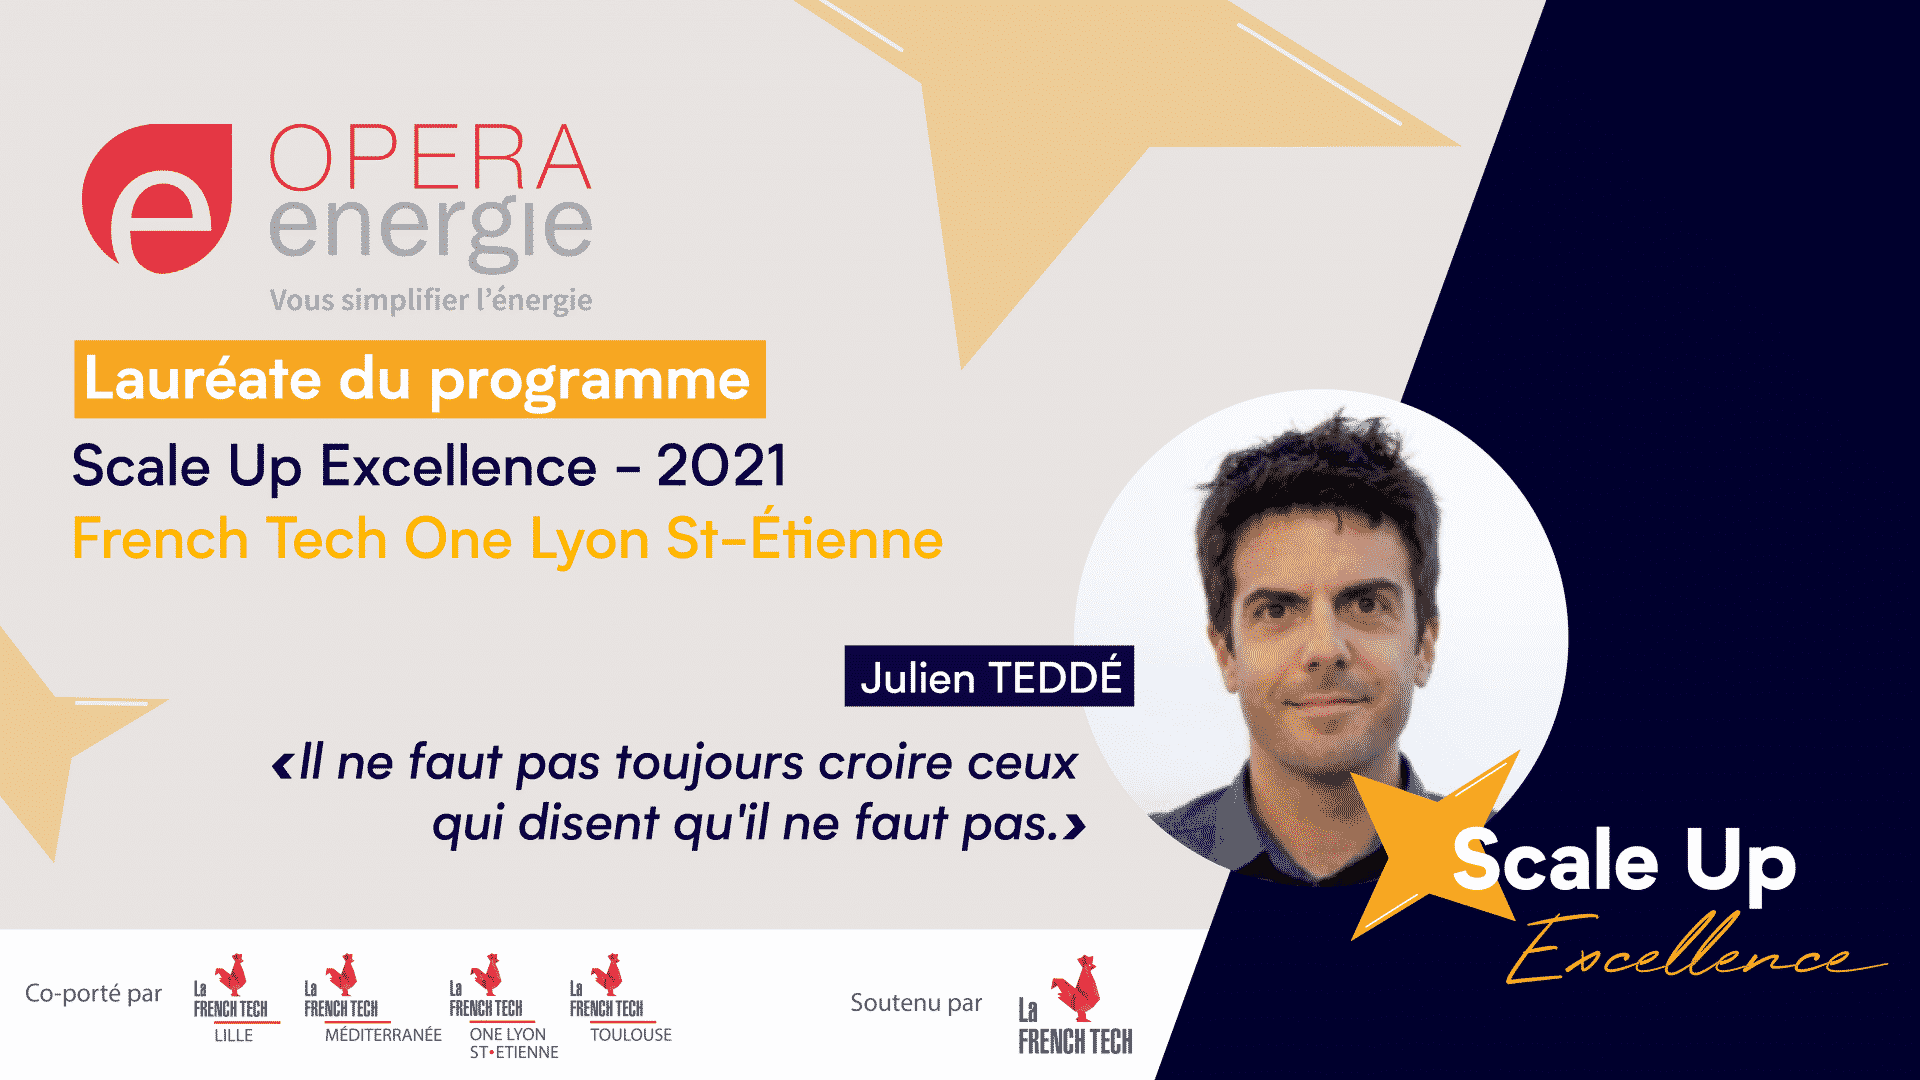 OPERA ENERGIE laureat du Scale-Up Excellence